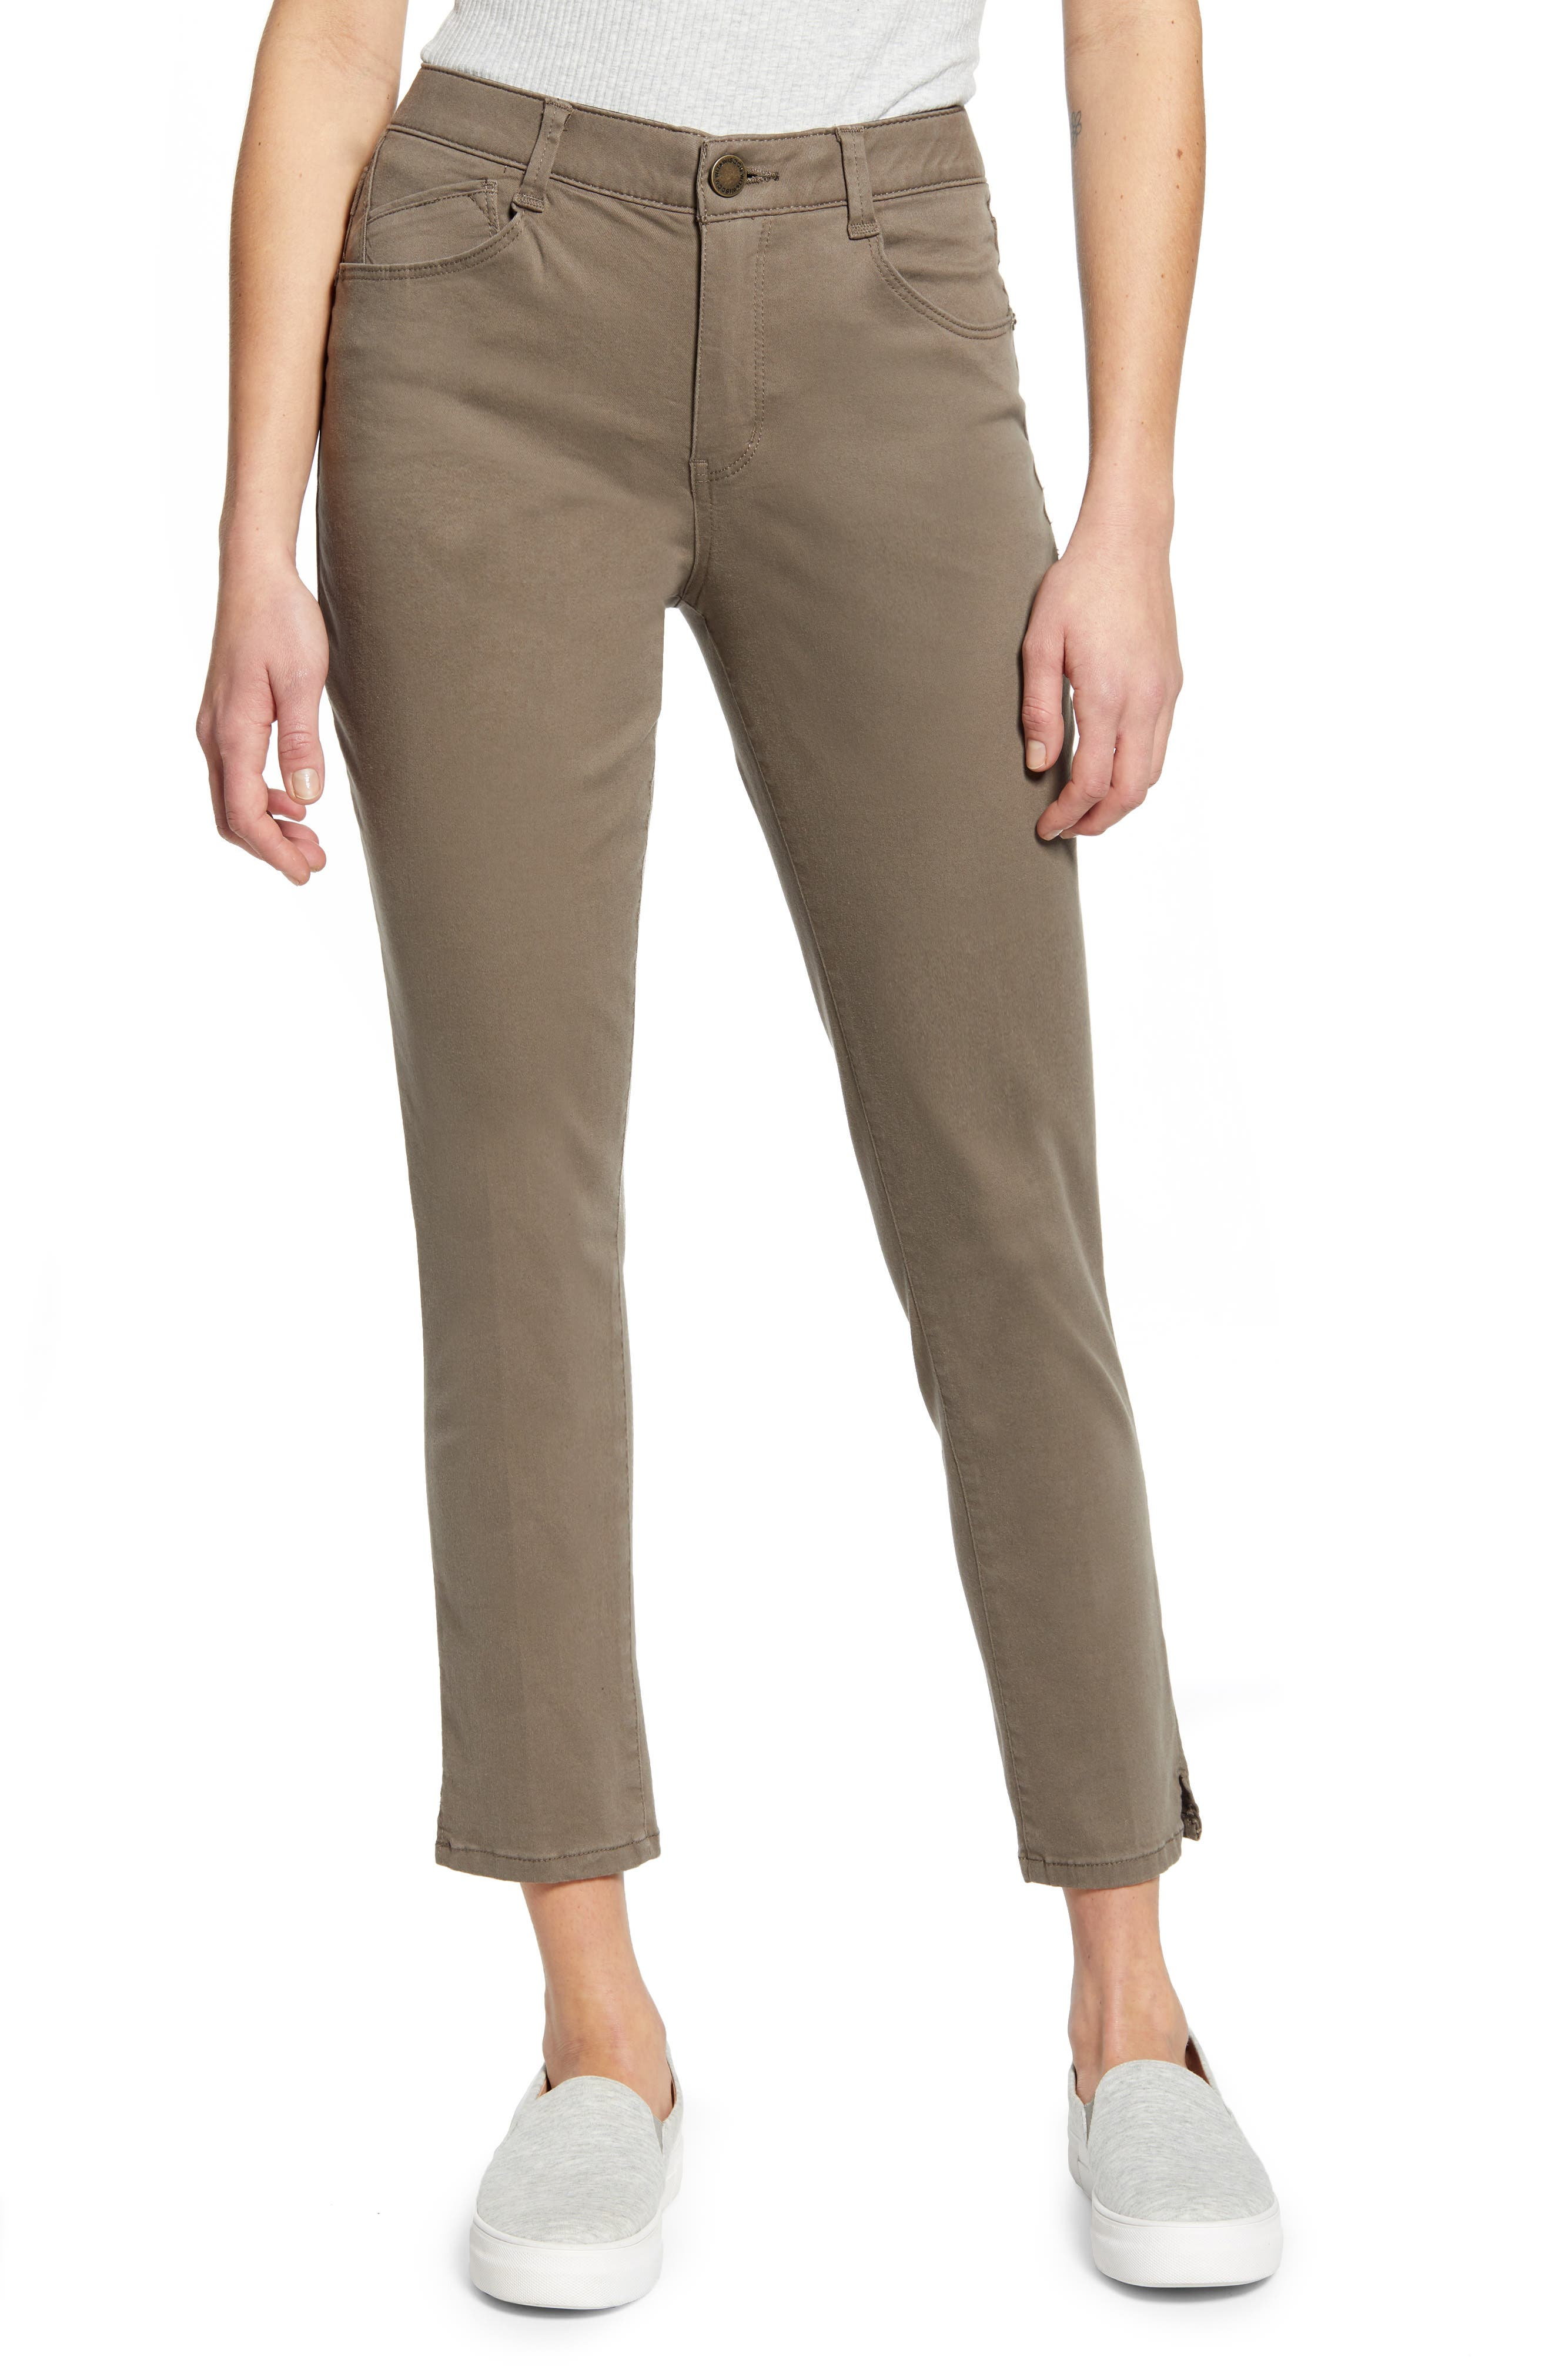 Petite Women's Wit & Wisdom Ab-Solution High Waist Ankle Skinny Pants,  00P - Green (Regular & Petite) (Nordstrom Exclusive)